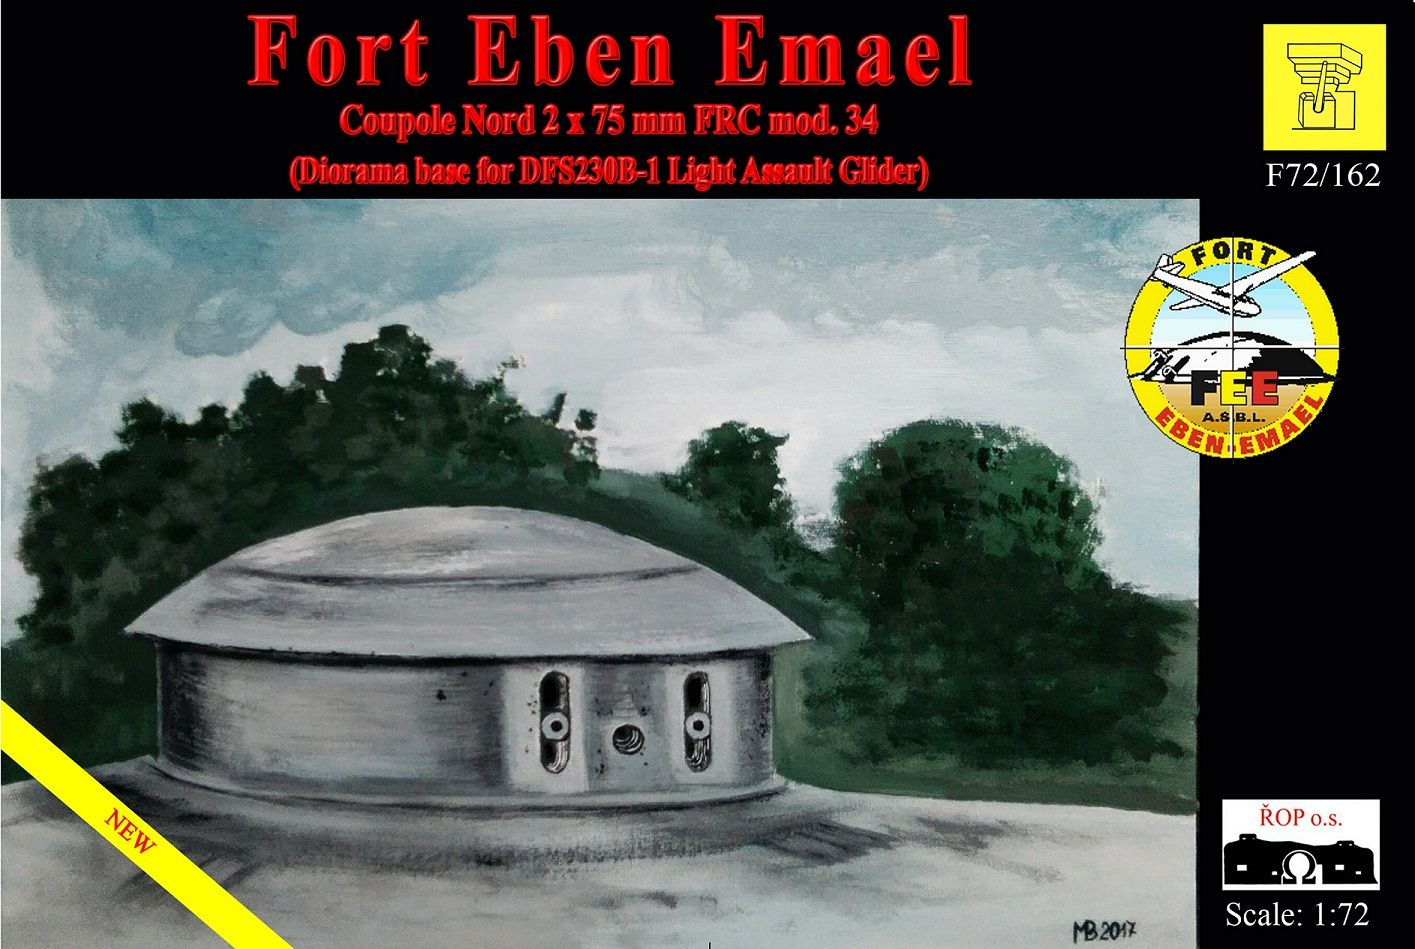 1-72-fort-eben-emael-0.jpg.big.jpg